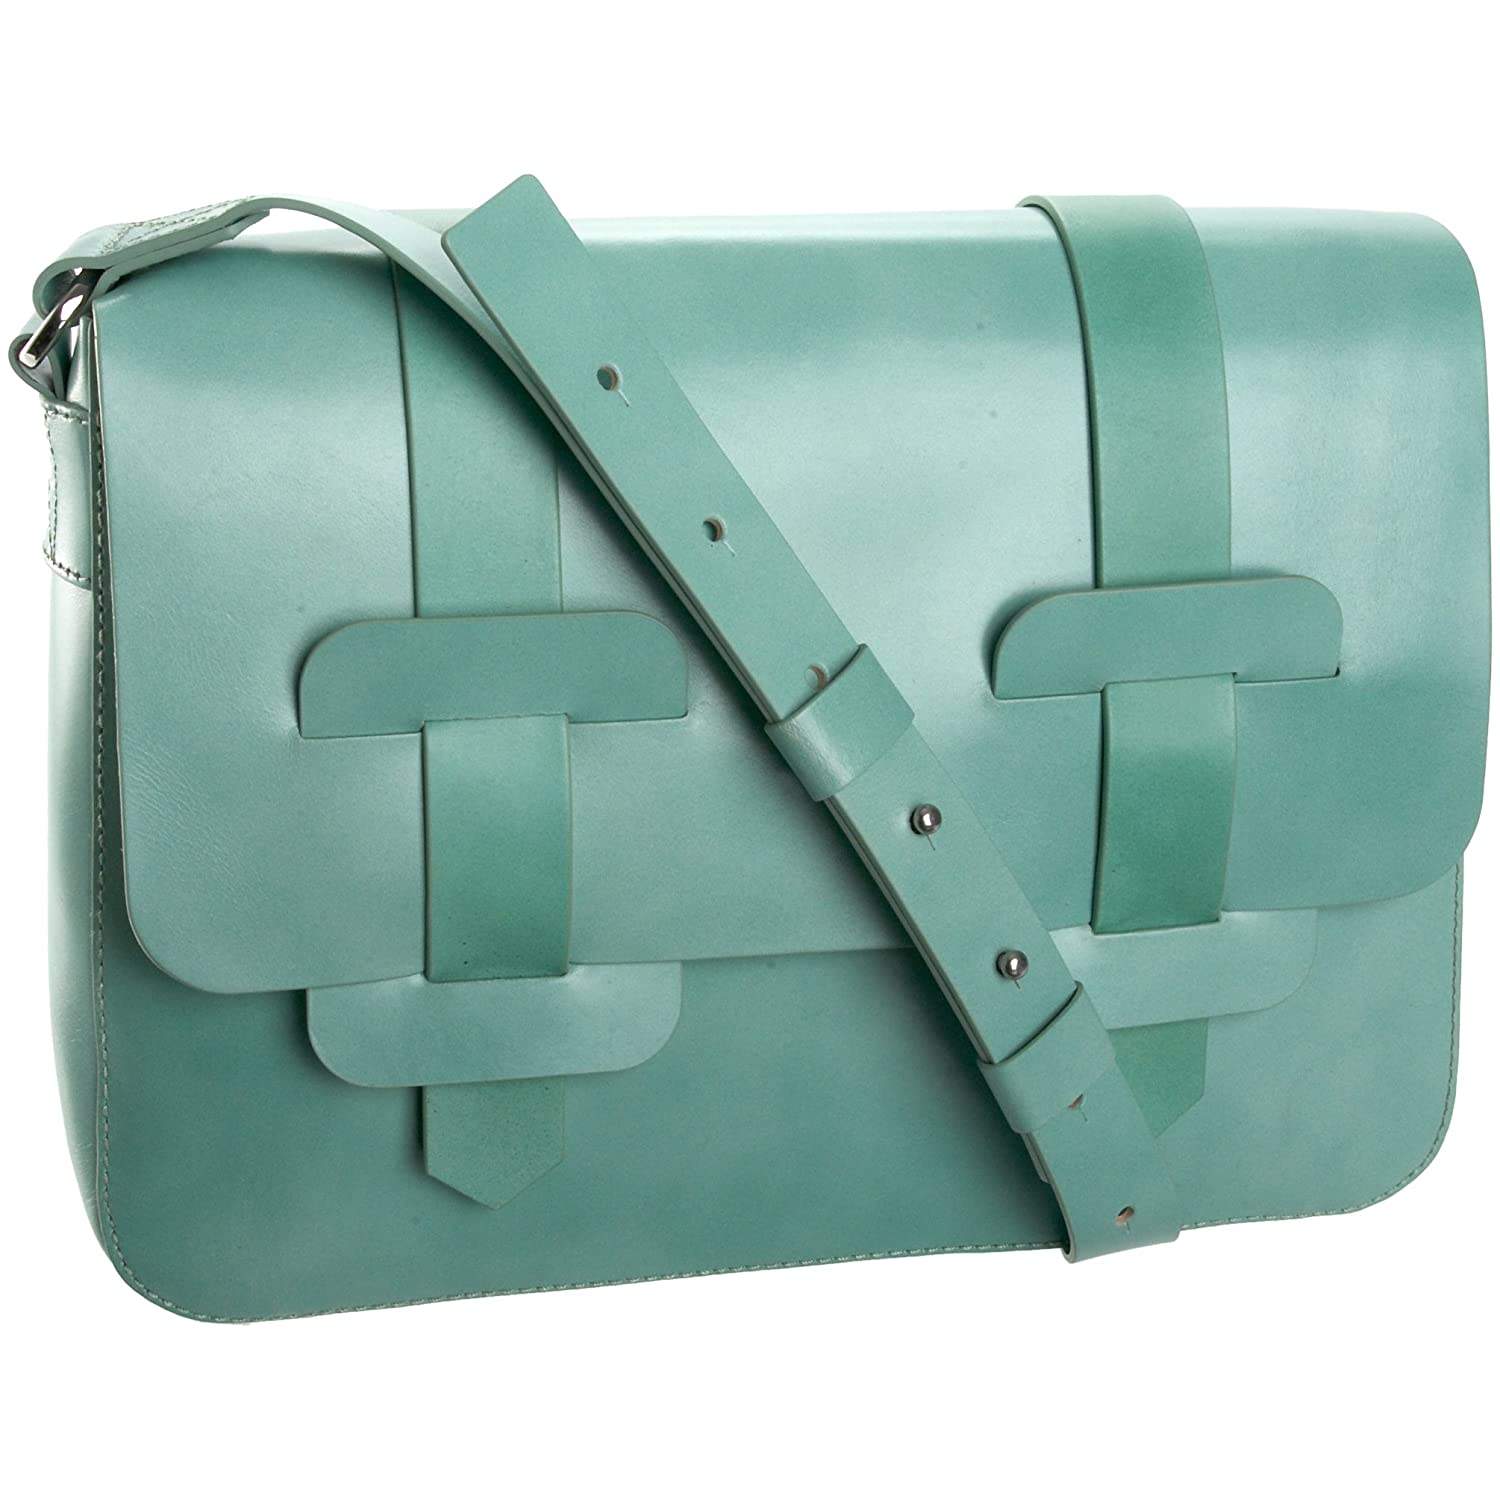 Orla Kiely Rosemary Satchel - Free Overnight Shipping on New Styles, Free Return Shipping: endless.com :  blue bag work satchel